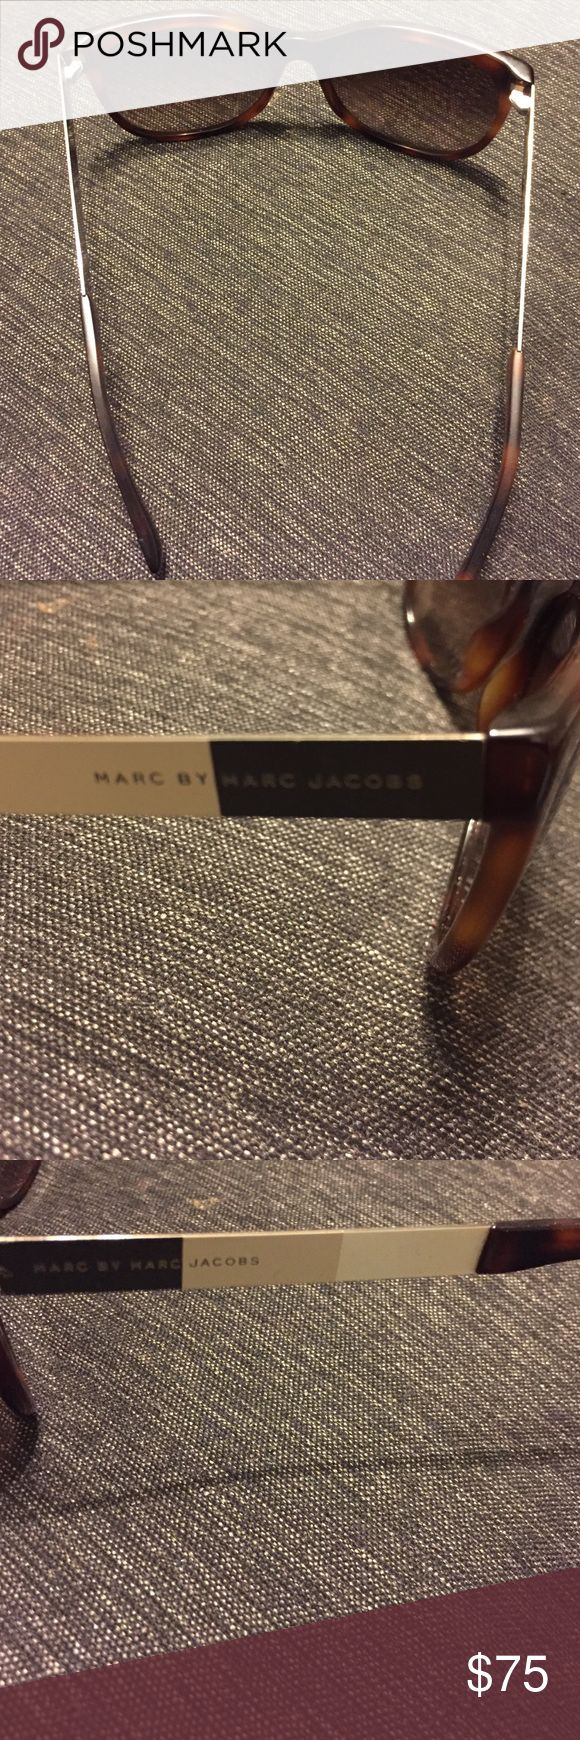 Nice Sunglasses for sale Designer Sunglasses Marc by Marc Jacobs Accessories Sunglasses